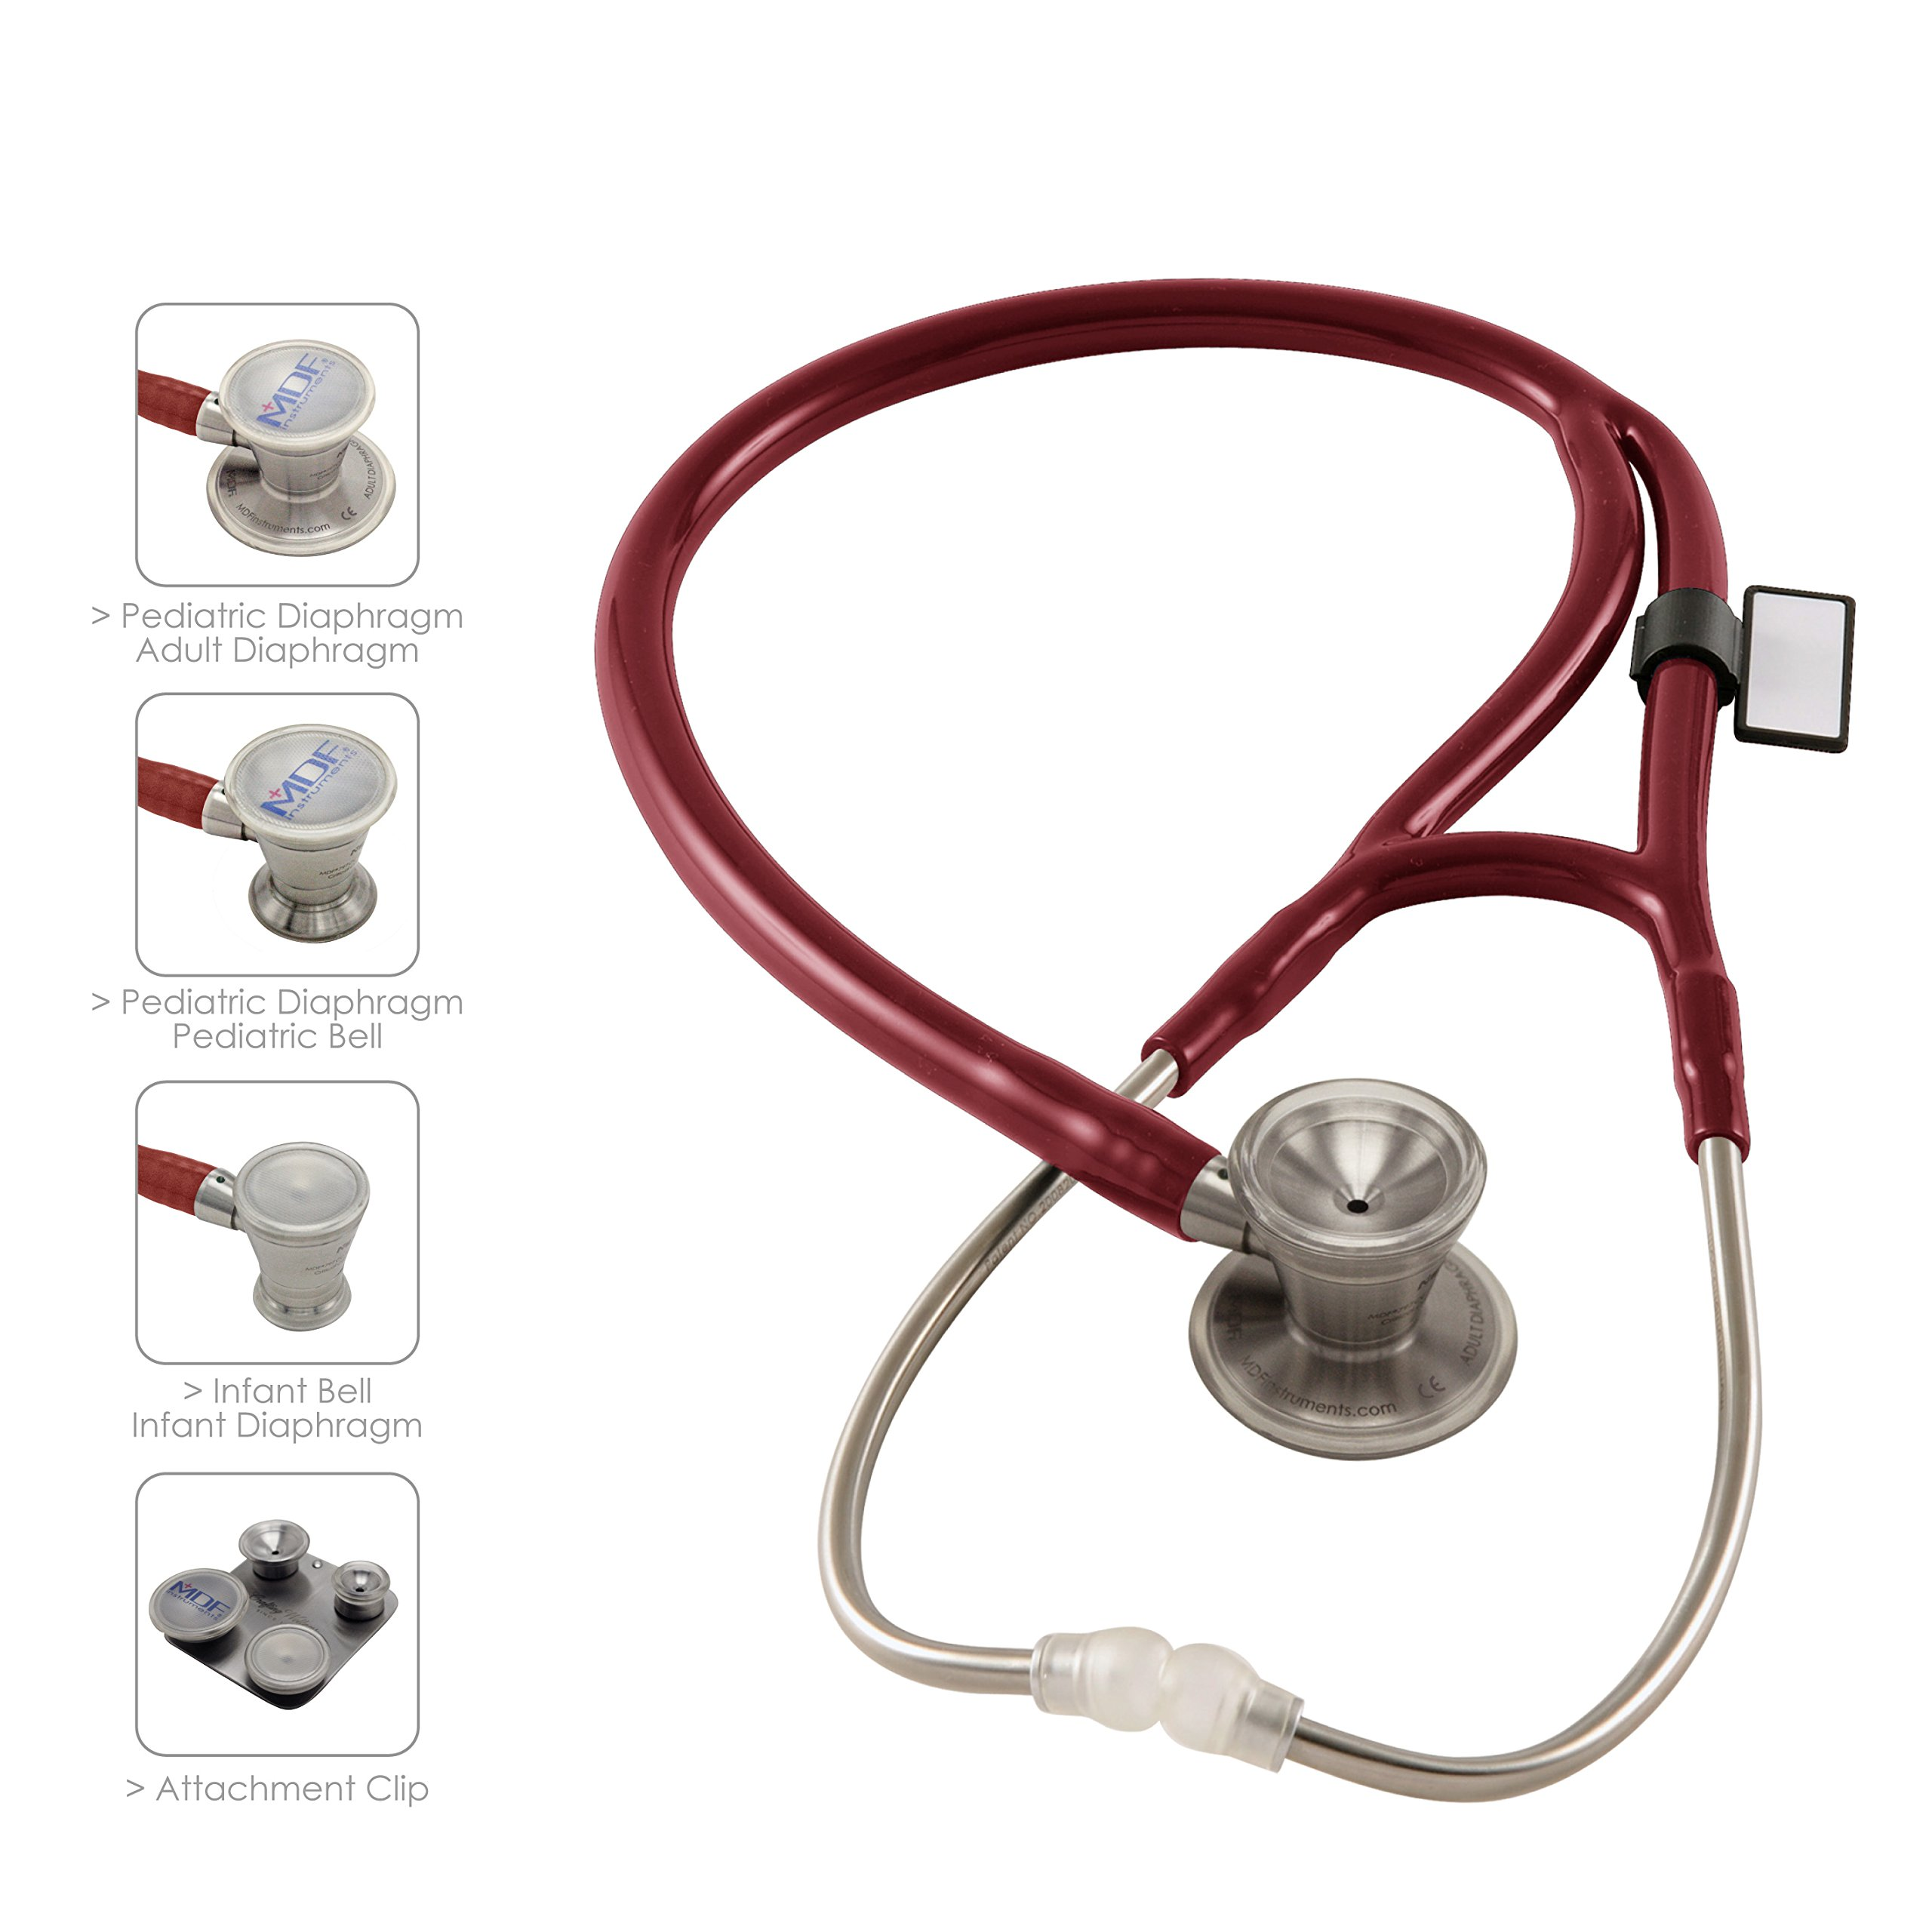 MDF ProCardial C3 Cardiology Stainless Steel Dual Head Stethoscope with Adult, Pediatric, and Infant-Neonatal convertible chestpiece - Burgundy (MDF797CC-17)